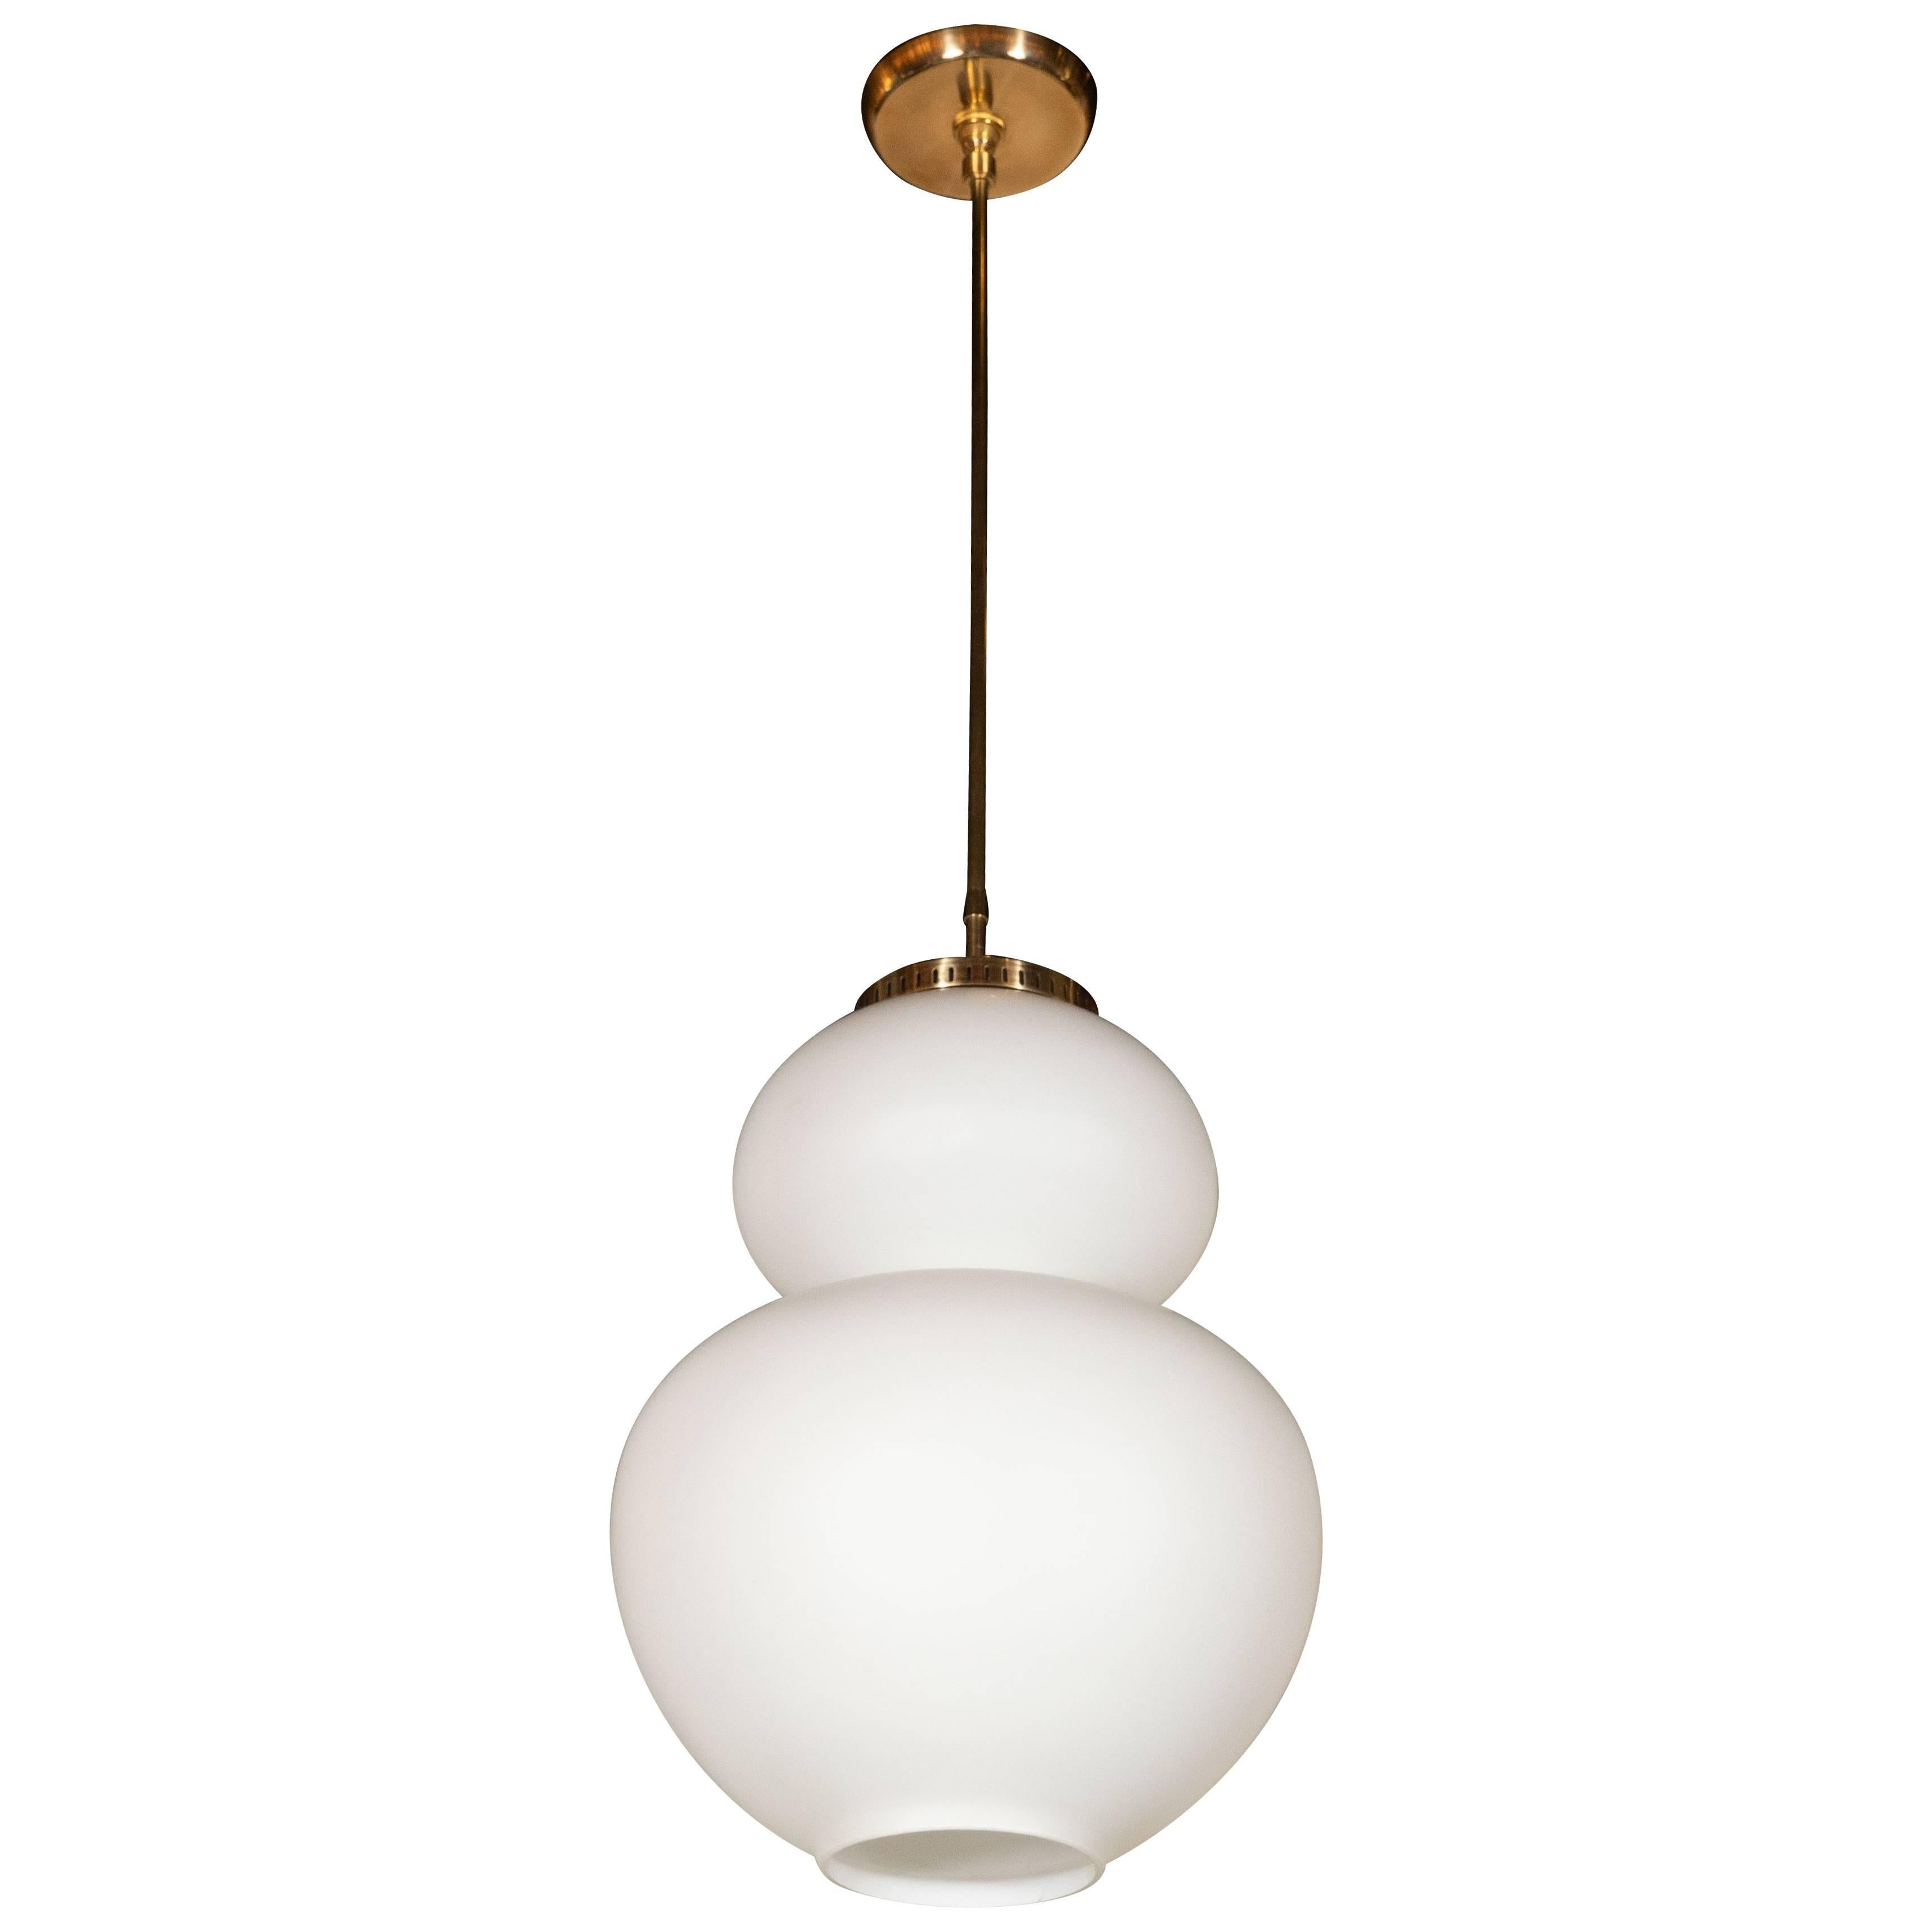 Organic Italian Mid-Century Modern Curvilinear Brass and Frosted Glass Pendant